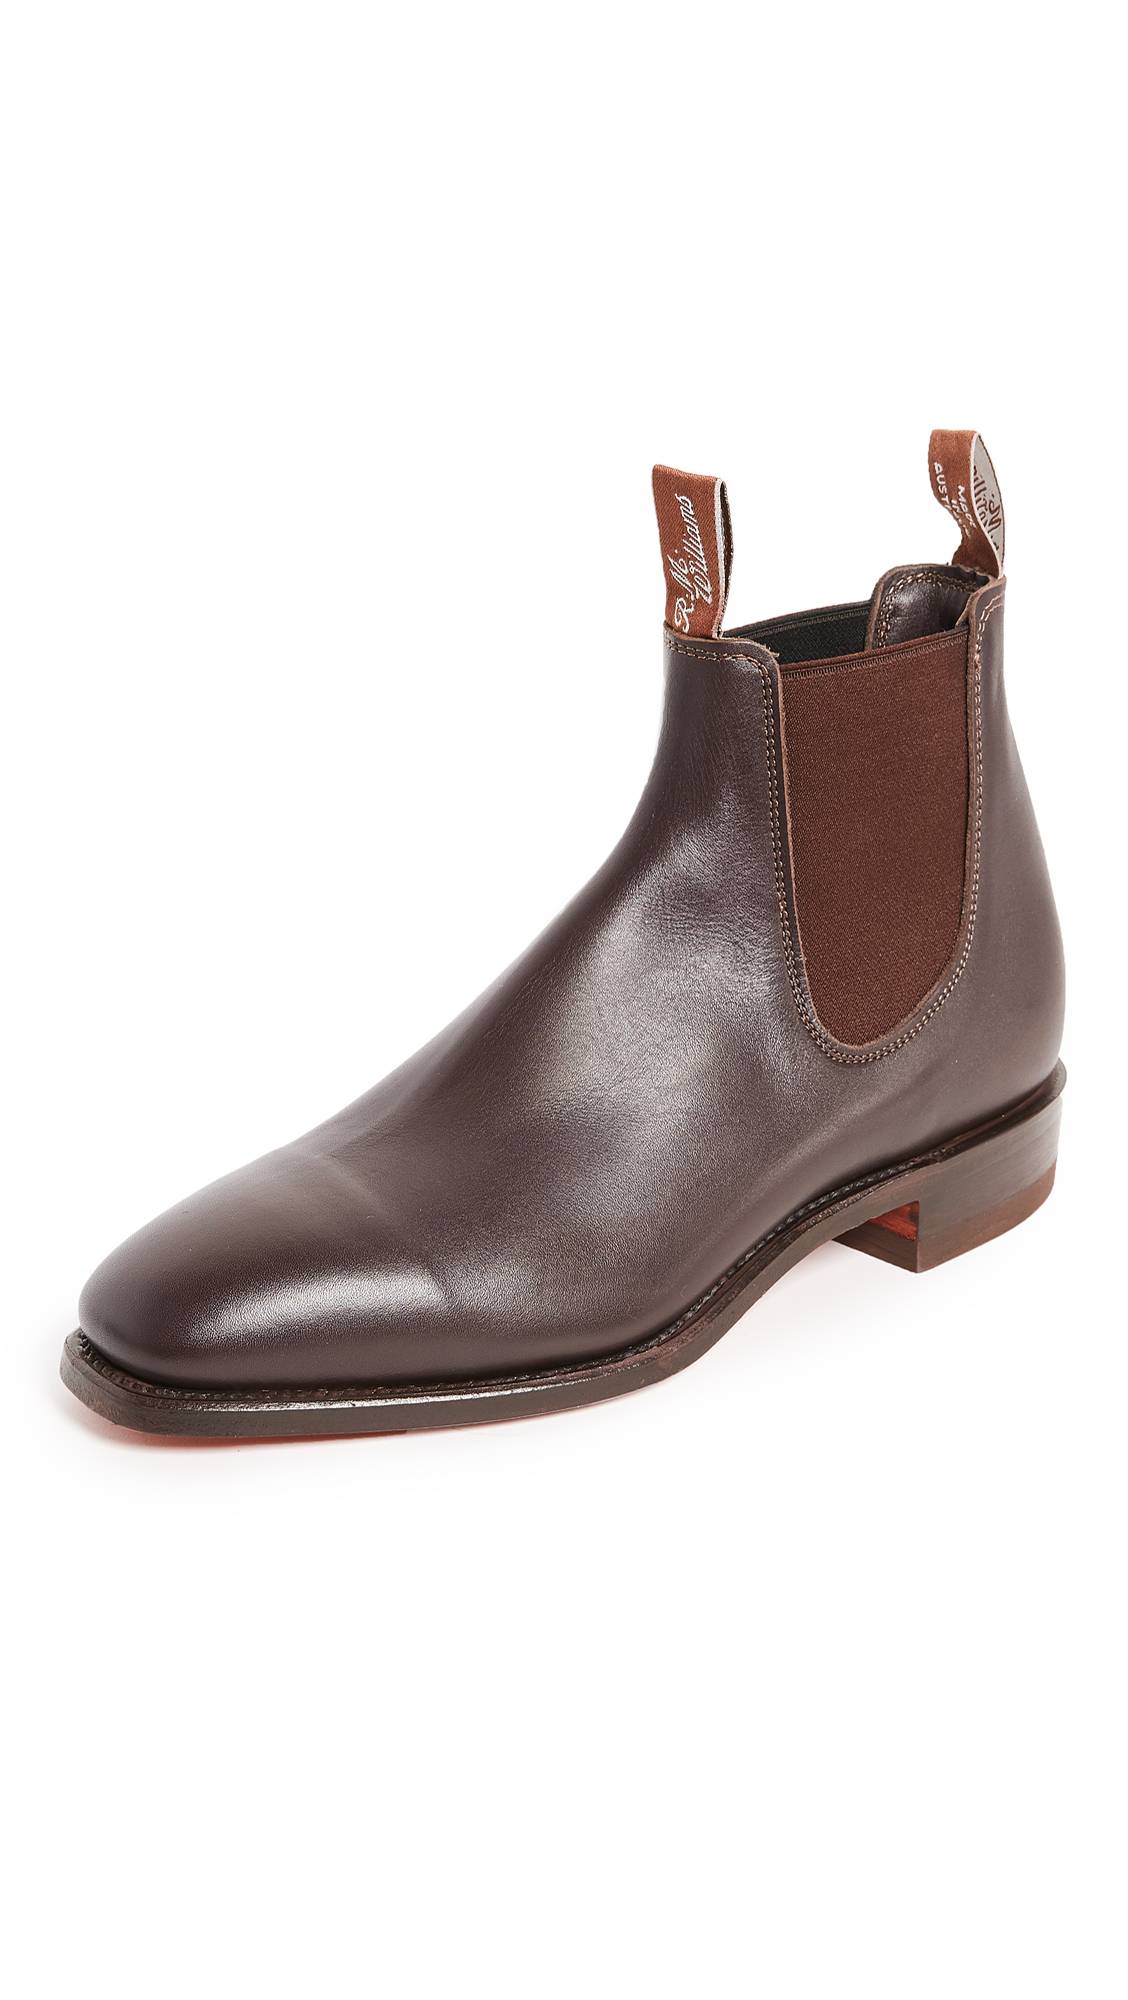 R.M.WILLIAMS Men'S Comfort Craft Leather Chelsea Boots in Brown